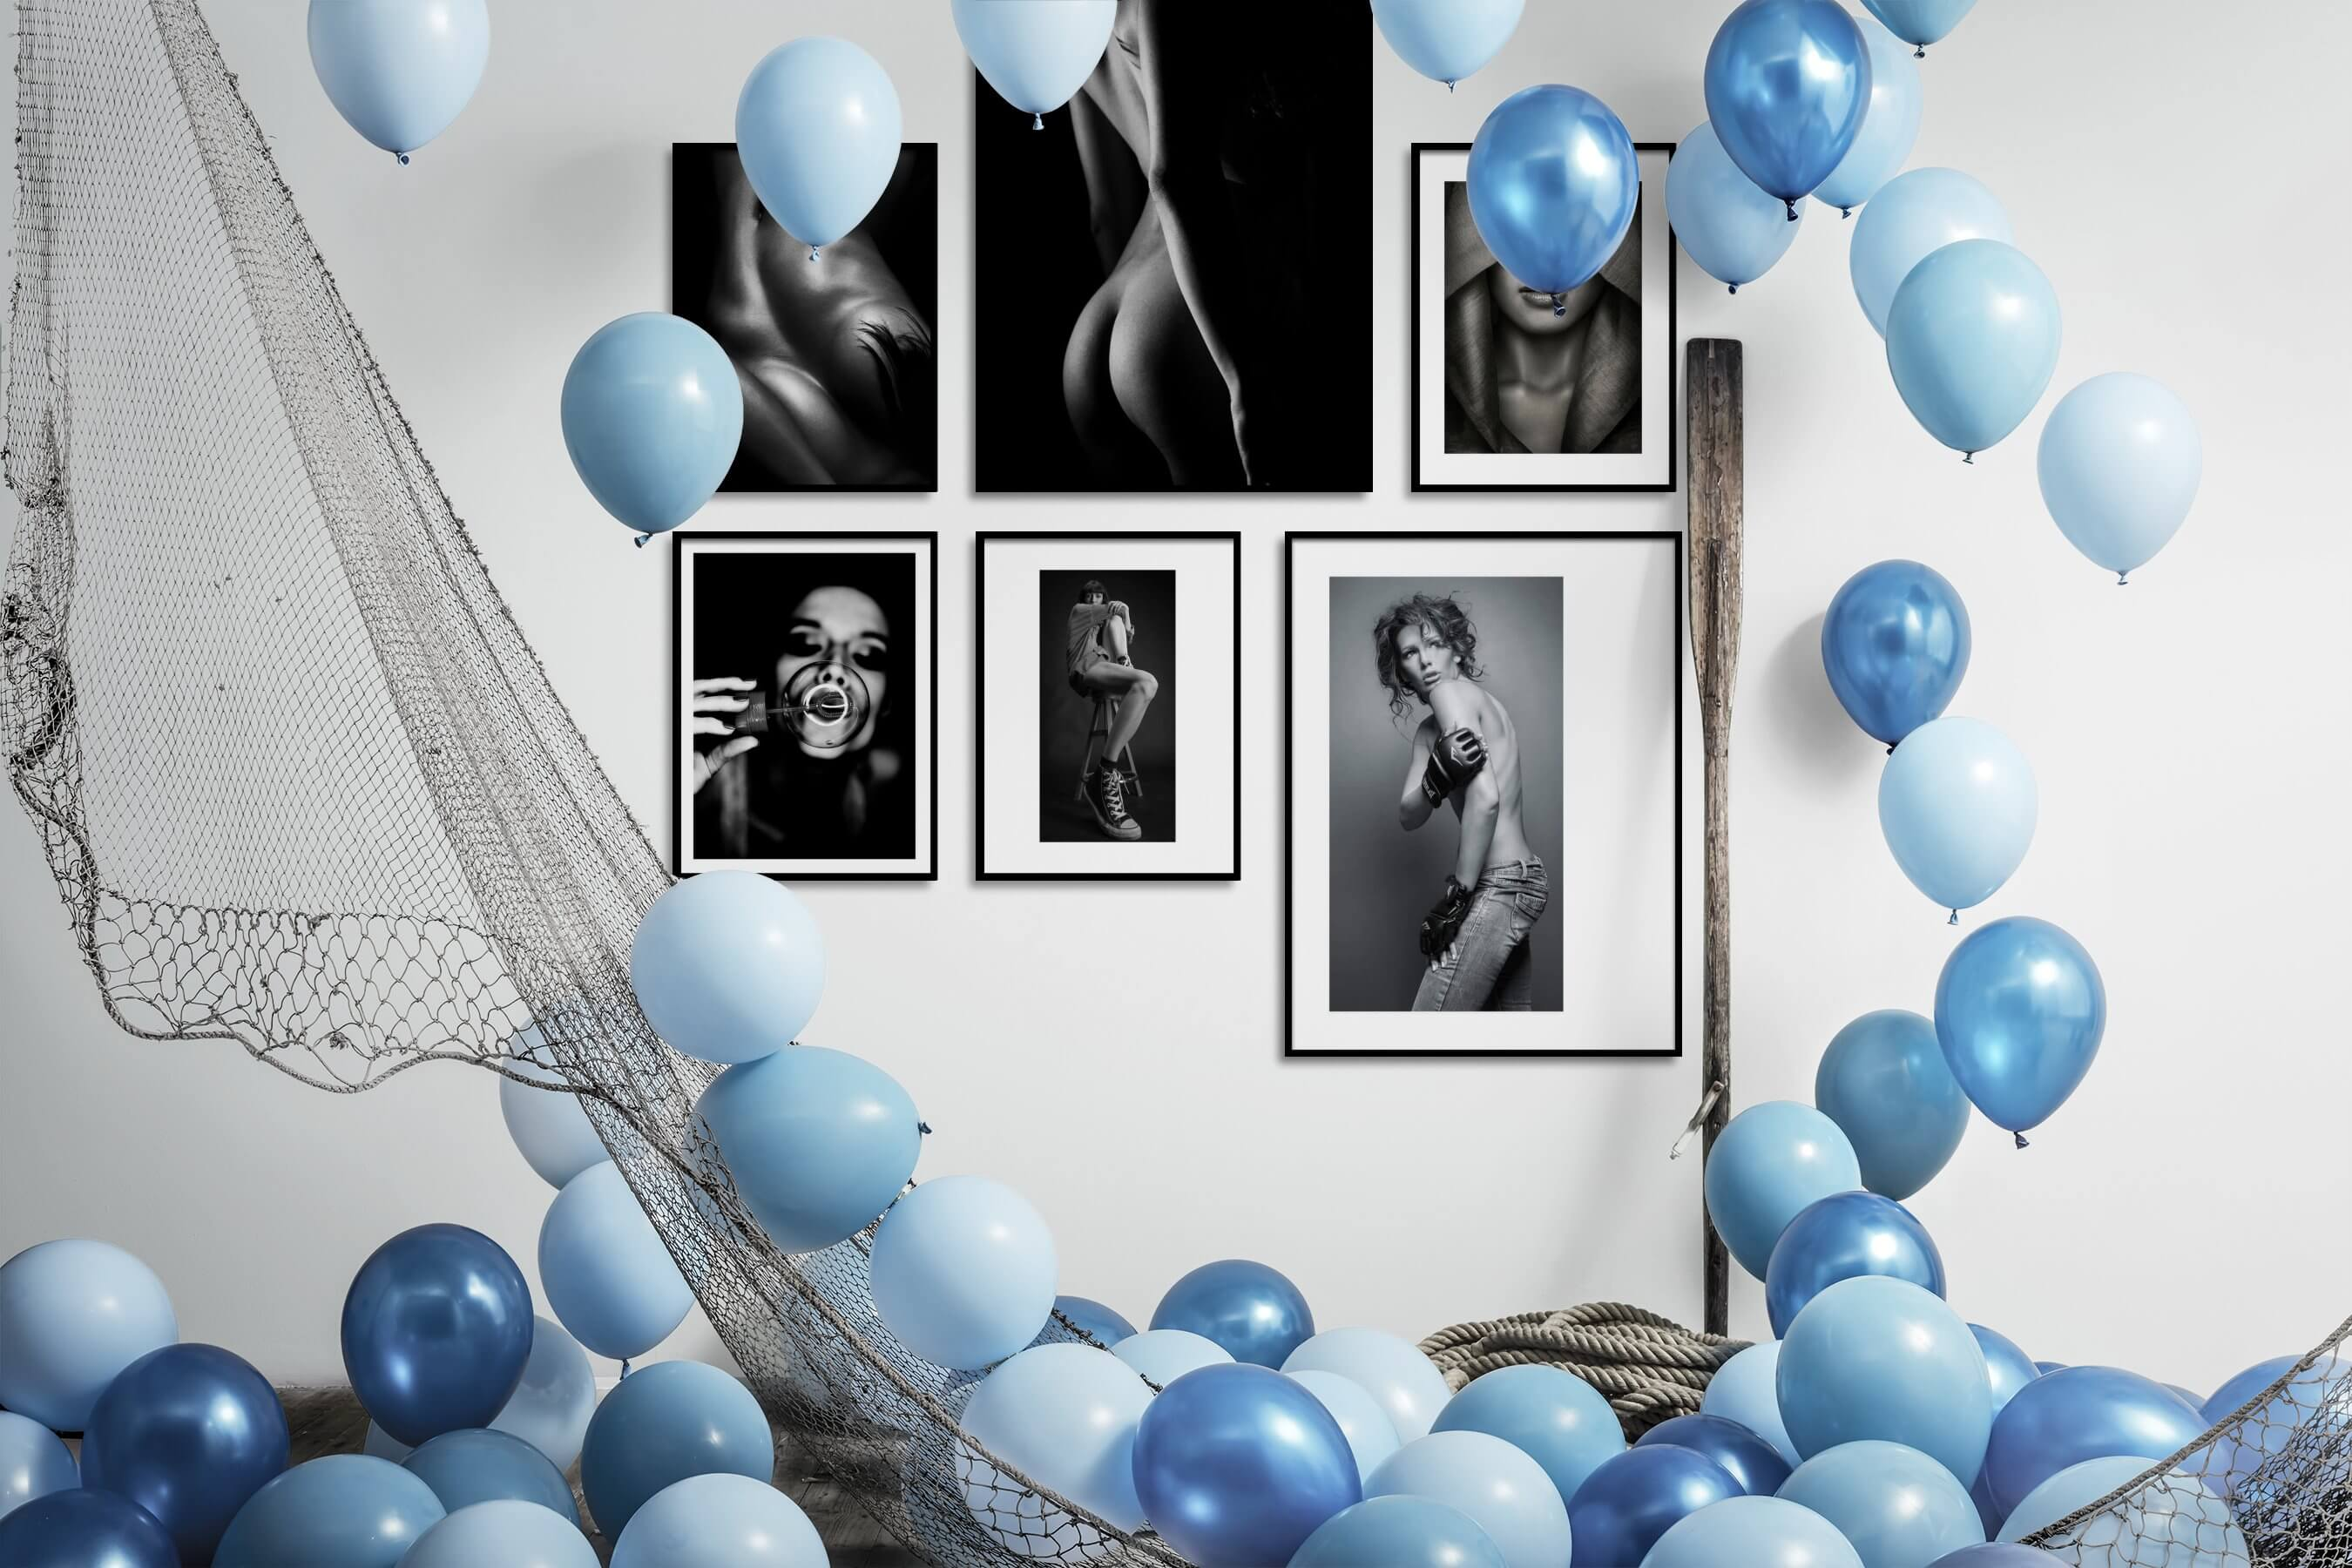 Gallery wall idea with six framed pictures arranged on a wall depicting Fashion & Beauty, Black & White, Dark Tones, For the Moderate, and For the Minimalist